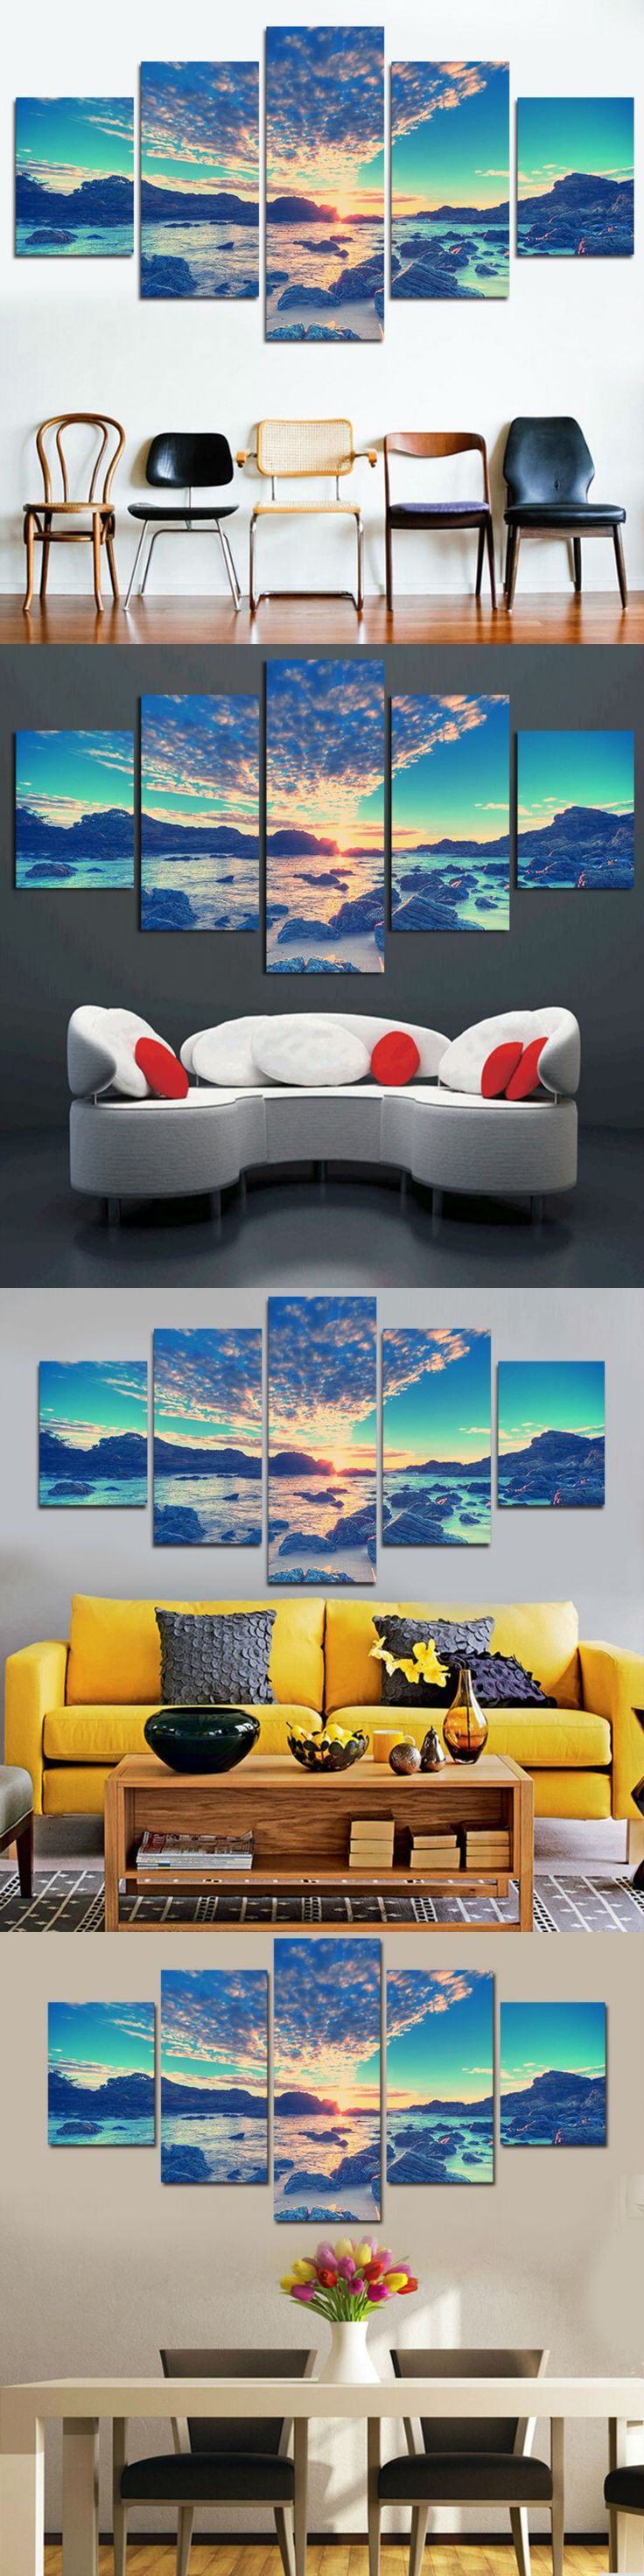 5 Panel Modern Wall Art Home Decoration Canvas Painting Canvas Prints Sea Scenery Beach Sailing Pictures Prints Art $14.9